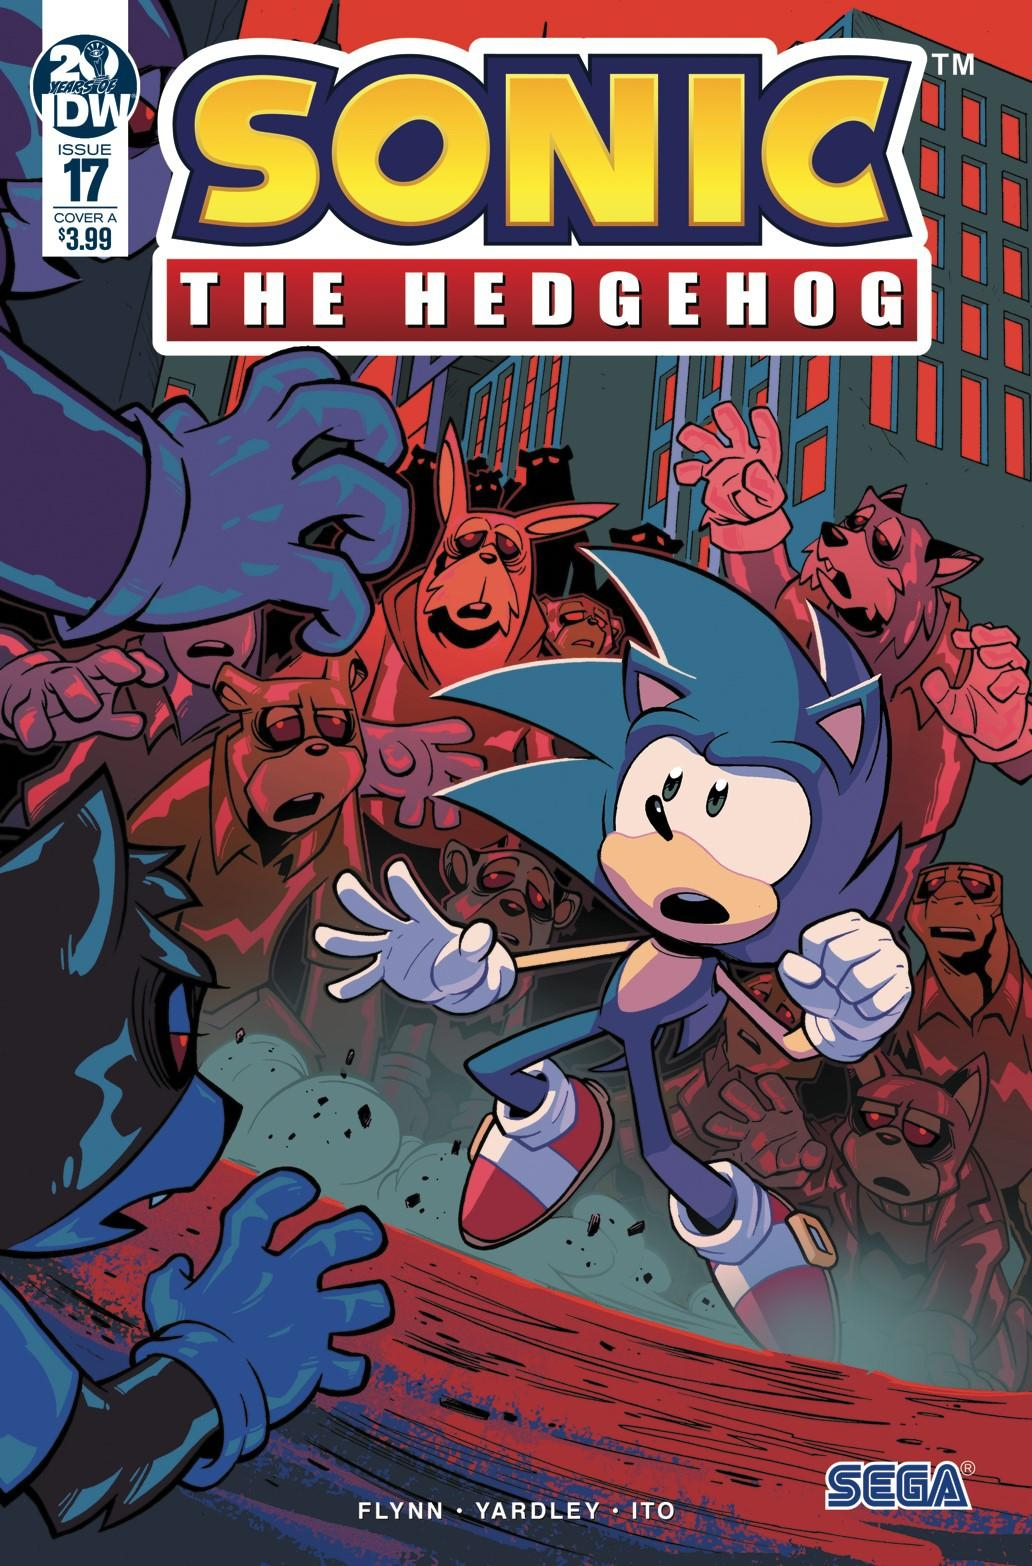 Sonic The Hedgehog #17 Cover A